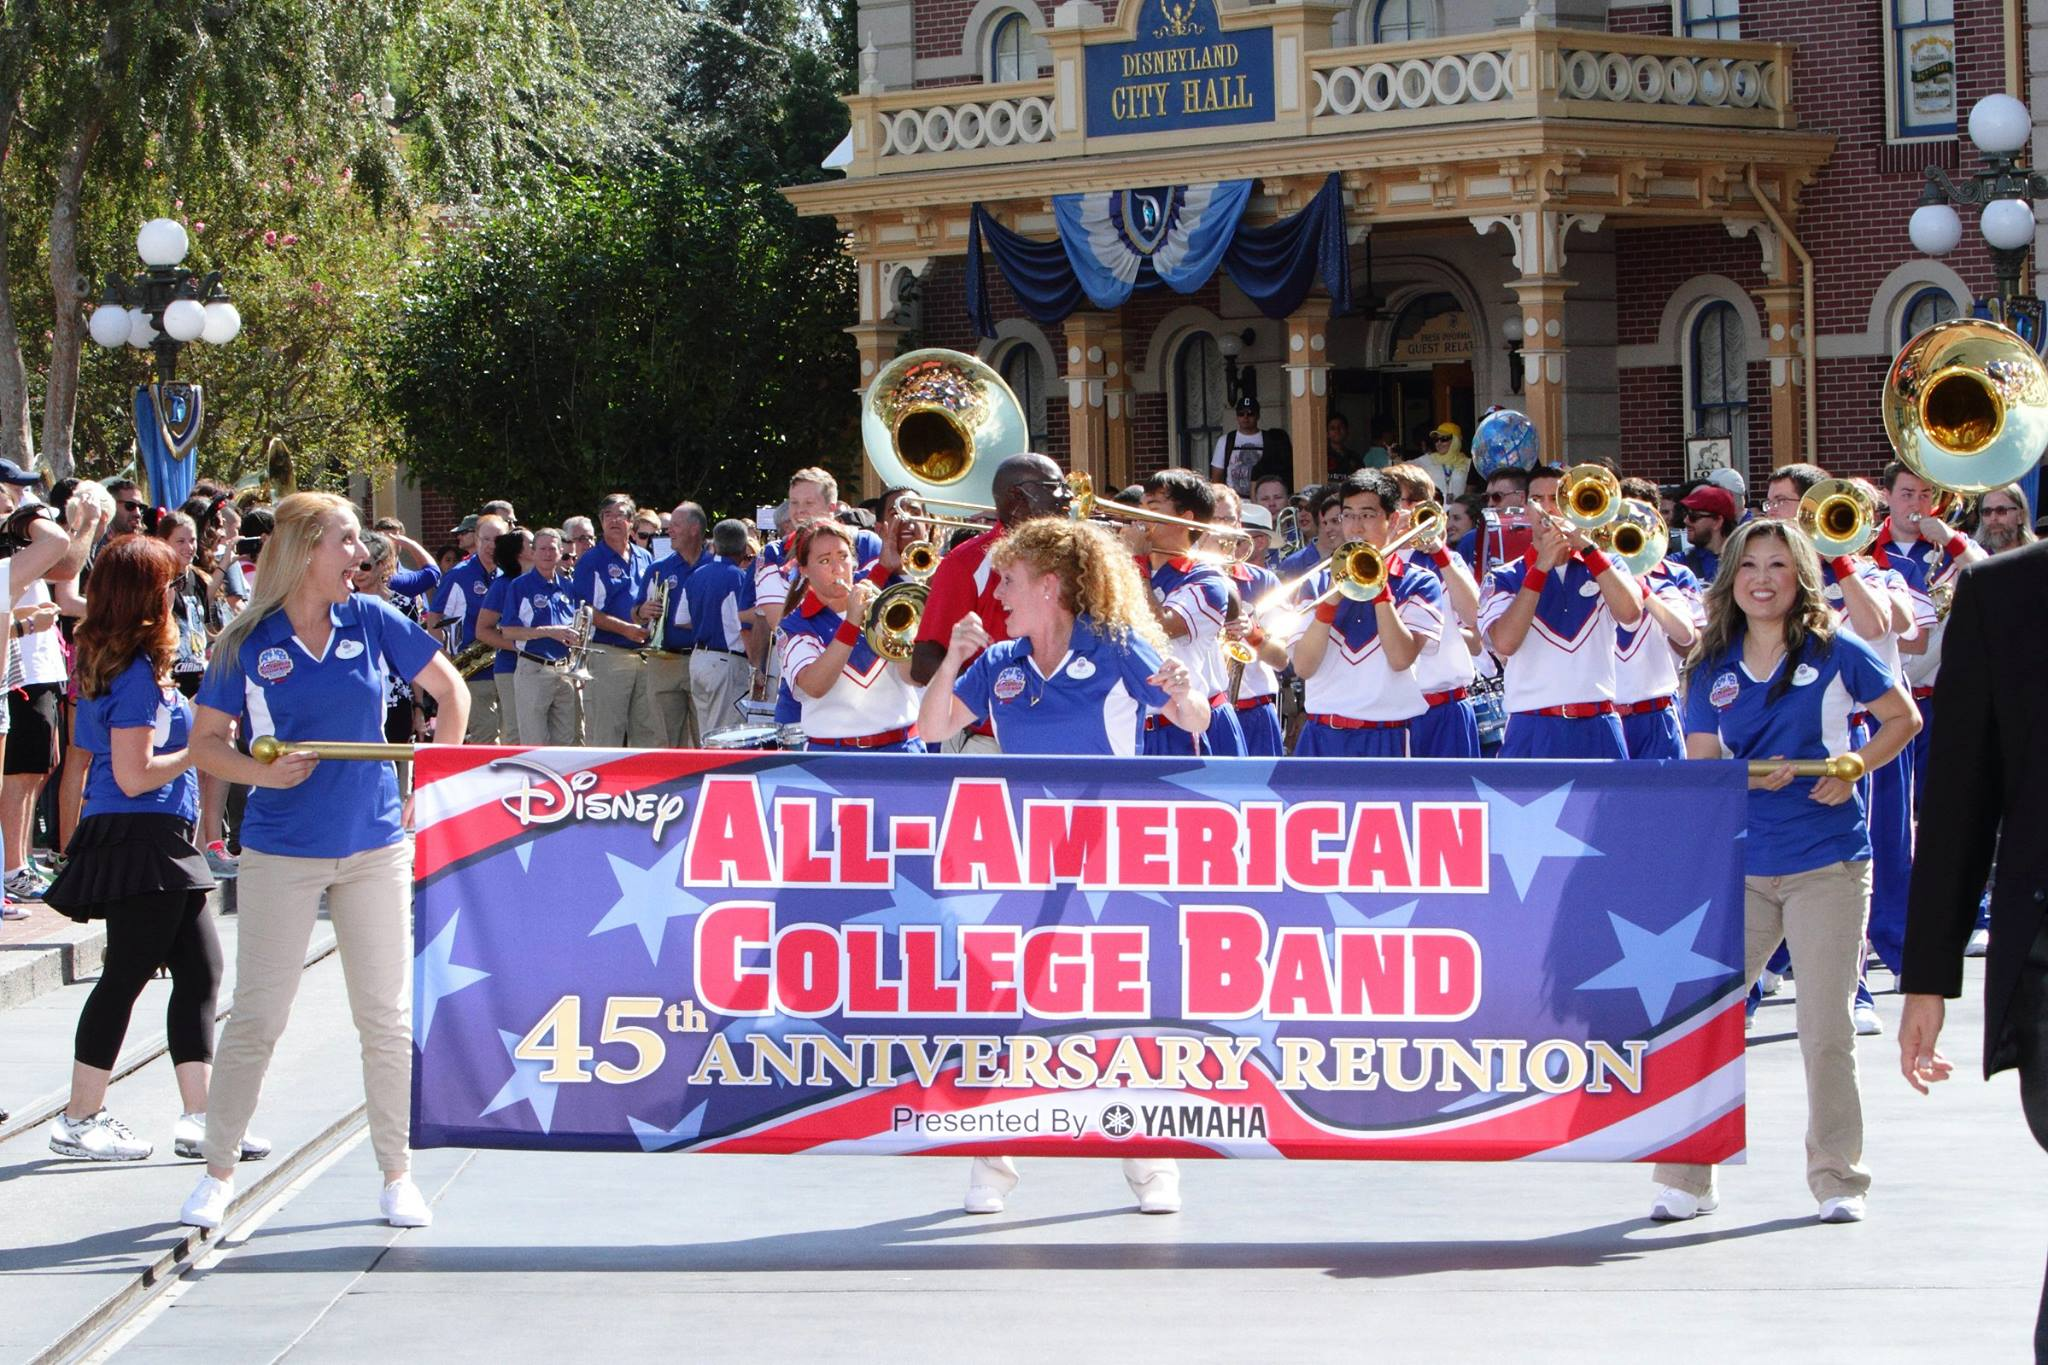 All-American College Band 45th Anniversary Reunion